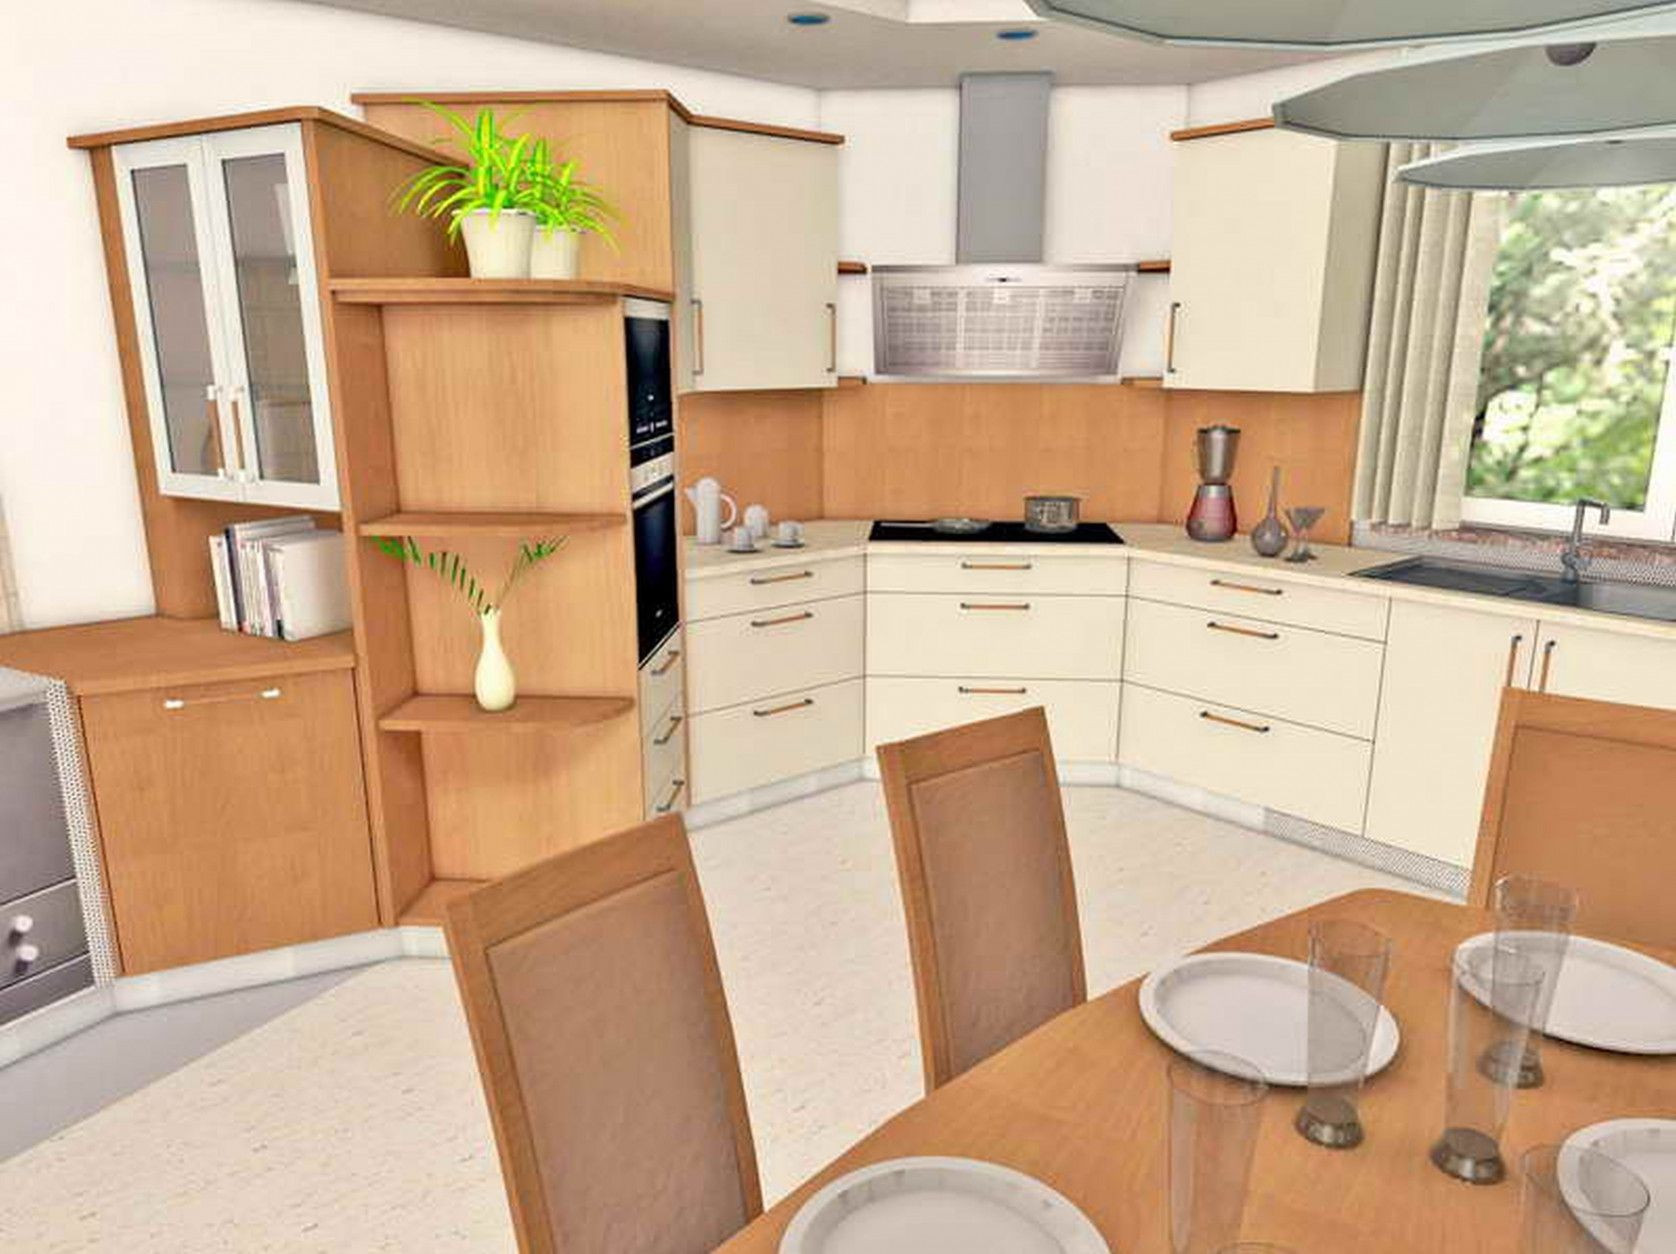 Best ideas about Cabinet Design Online . Save or Pin Virtual Kitchen Cabinet Layout exitallergy Now.